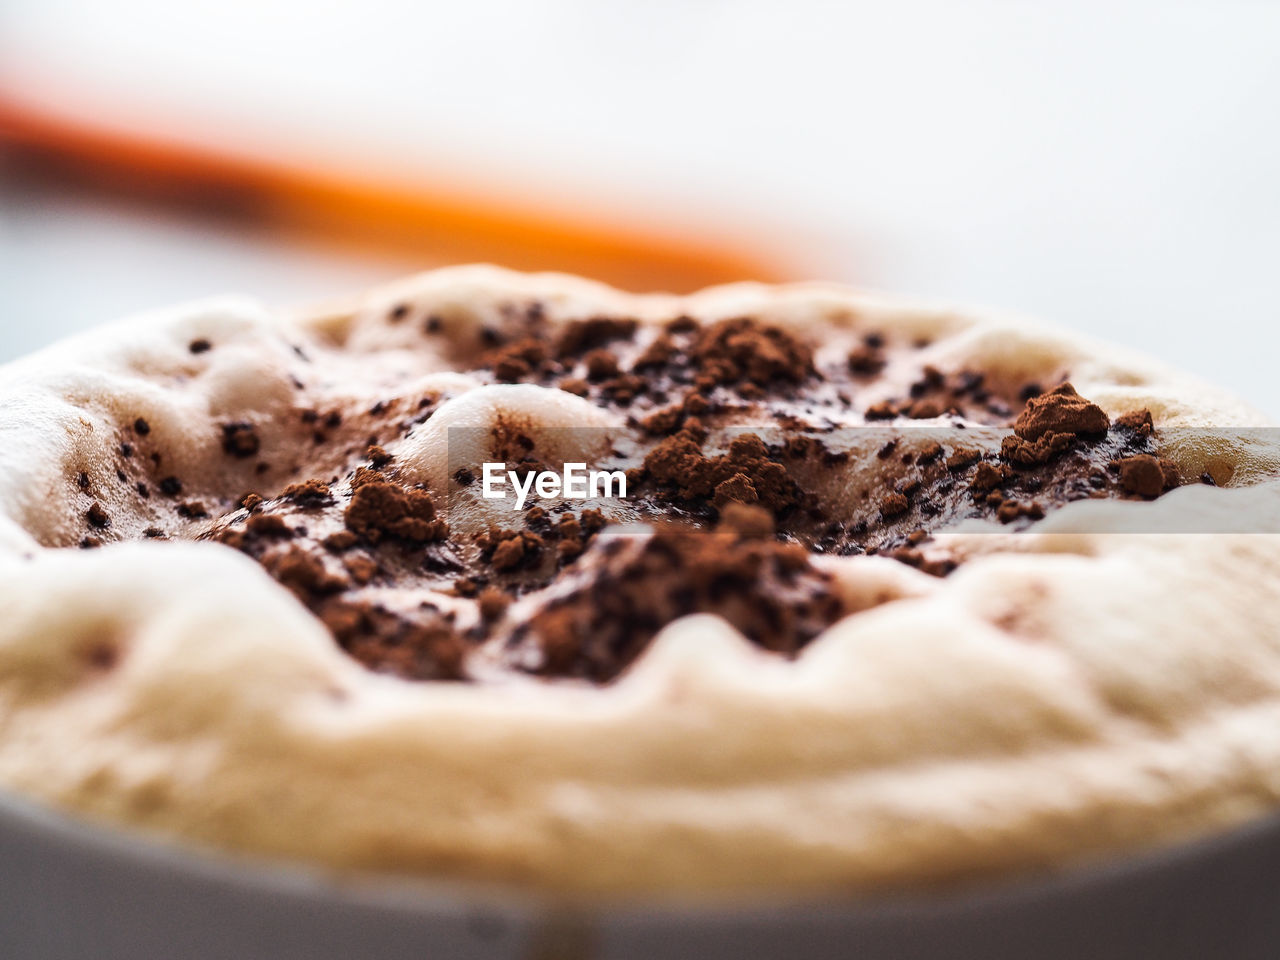 Close-Up Of Chocolate Cocoa Powder On Froth In Coffee At Cafe